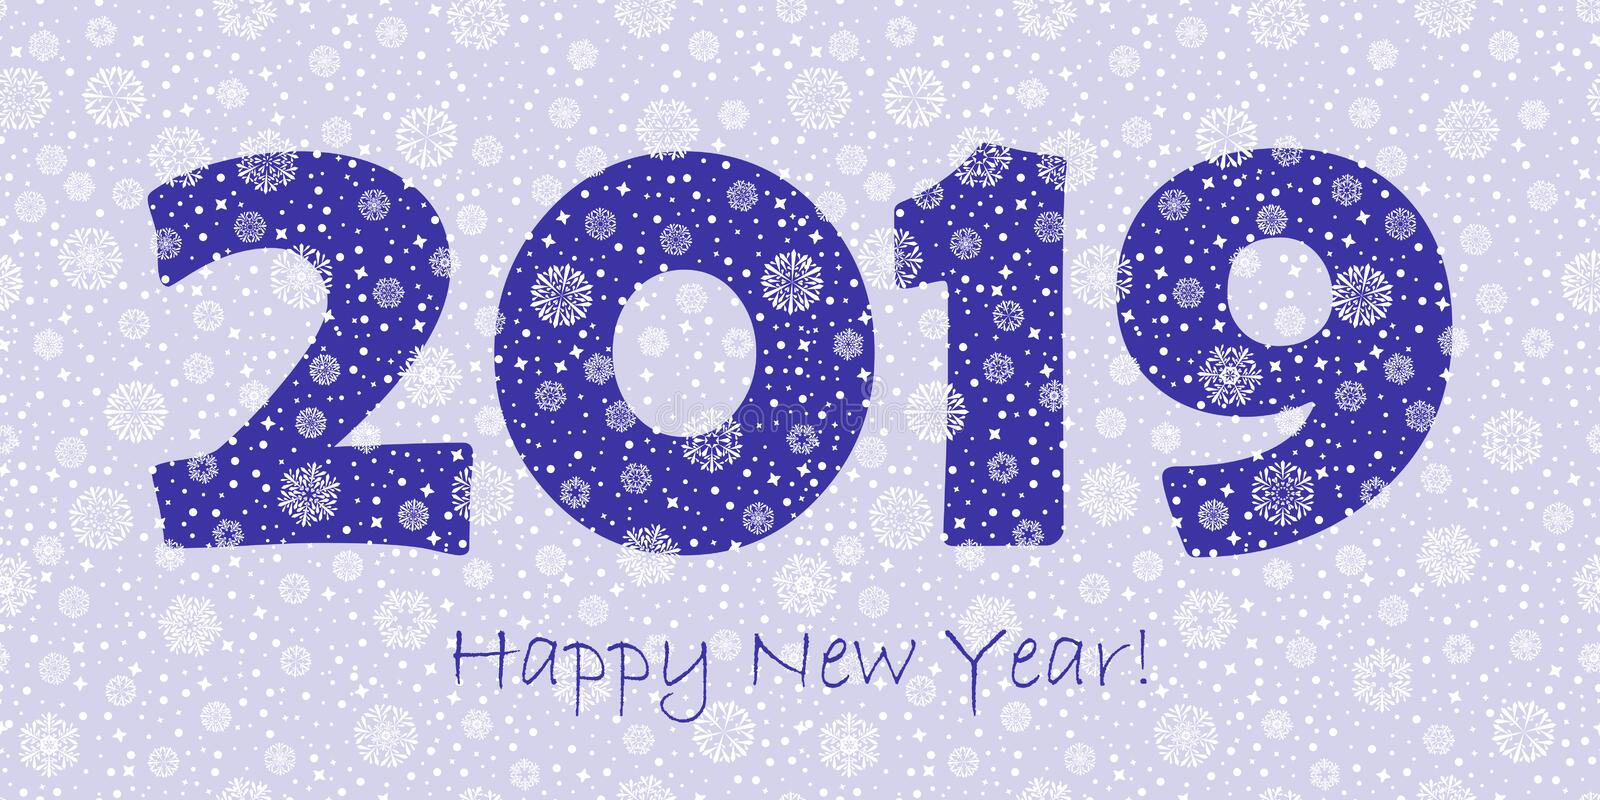 2019 happy new year greeting card. blue text on white winter background. snowflakes dots and stars. vector illustration. 2019 happy new year greeting card. blue royalty free illustration